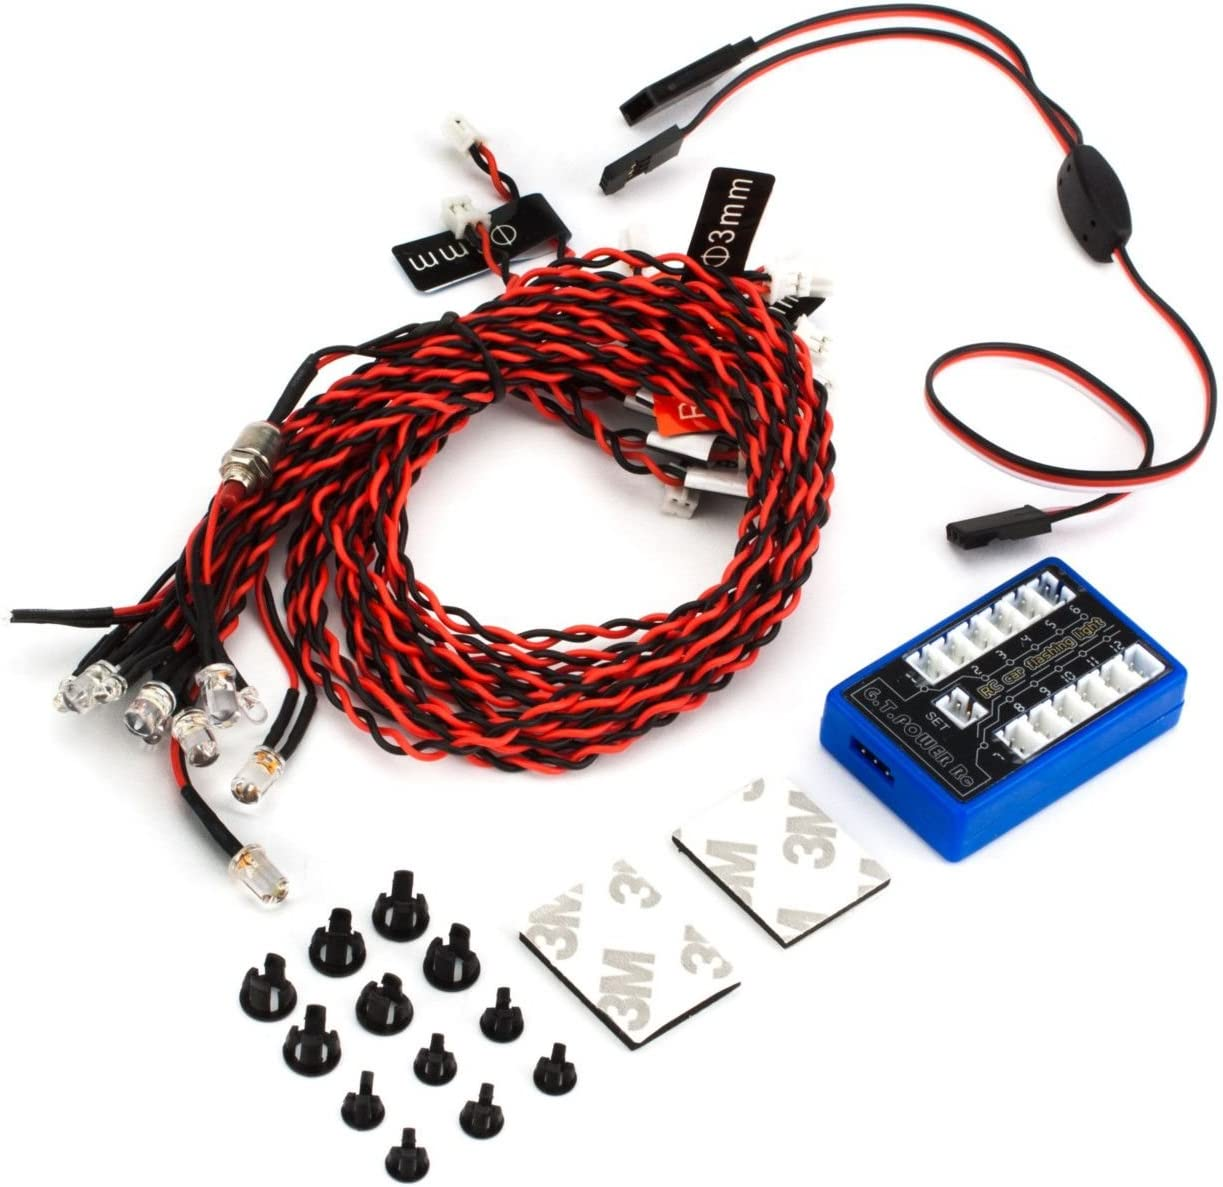 RC model car GT power 12 LED Flashing Light Wire Systems Control Box